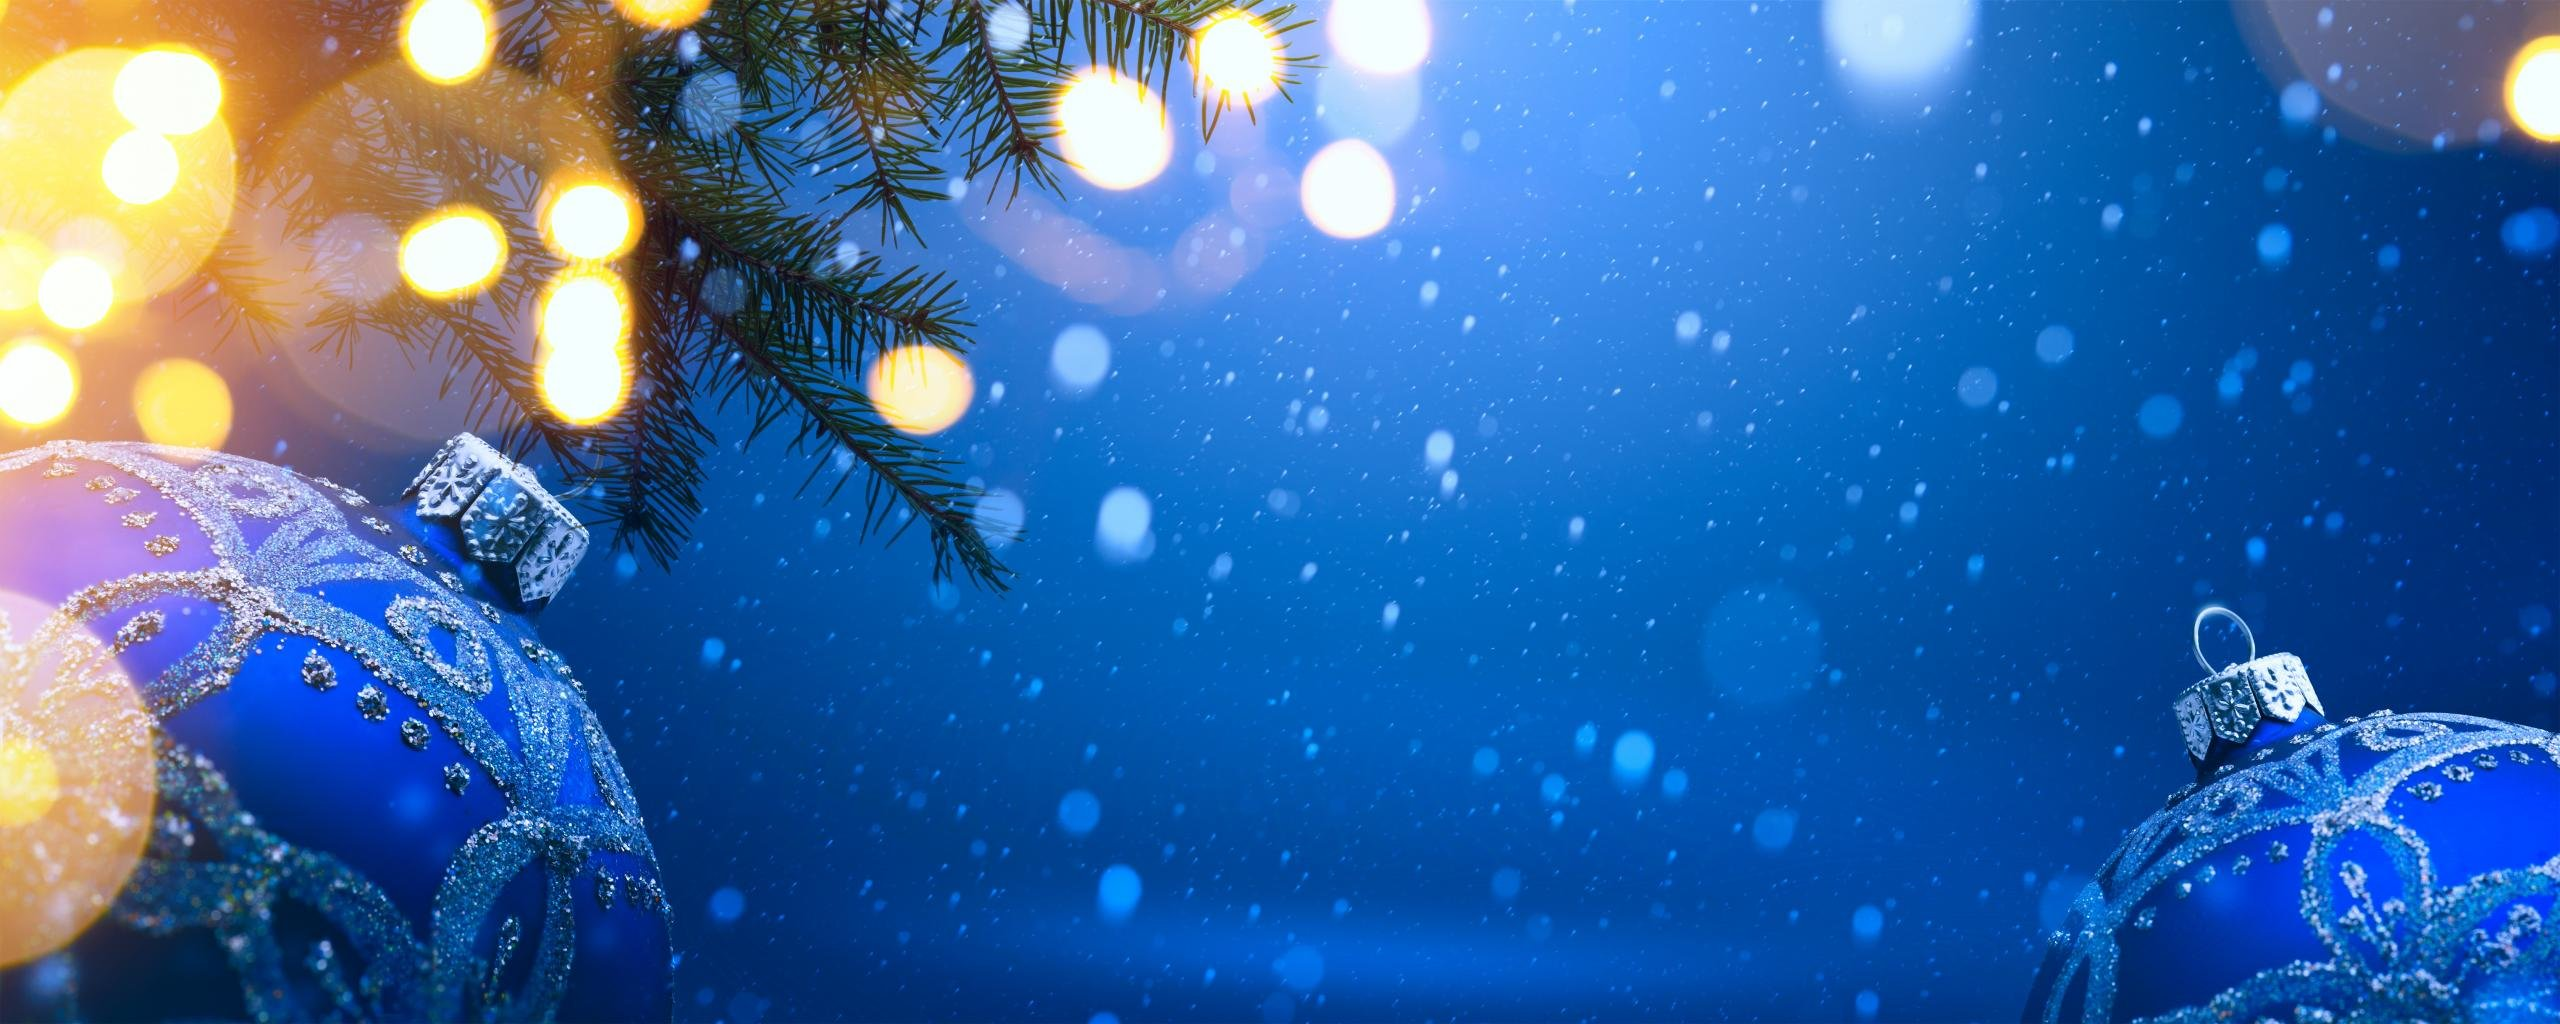 dual monitor christmas wallpapers, hd backgrounds